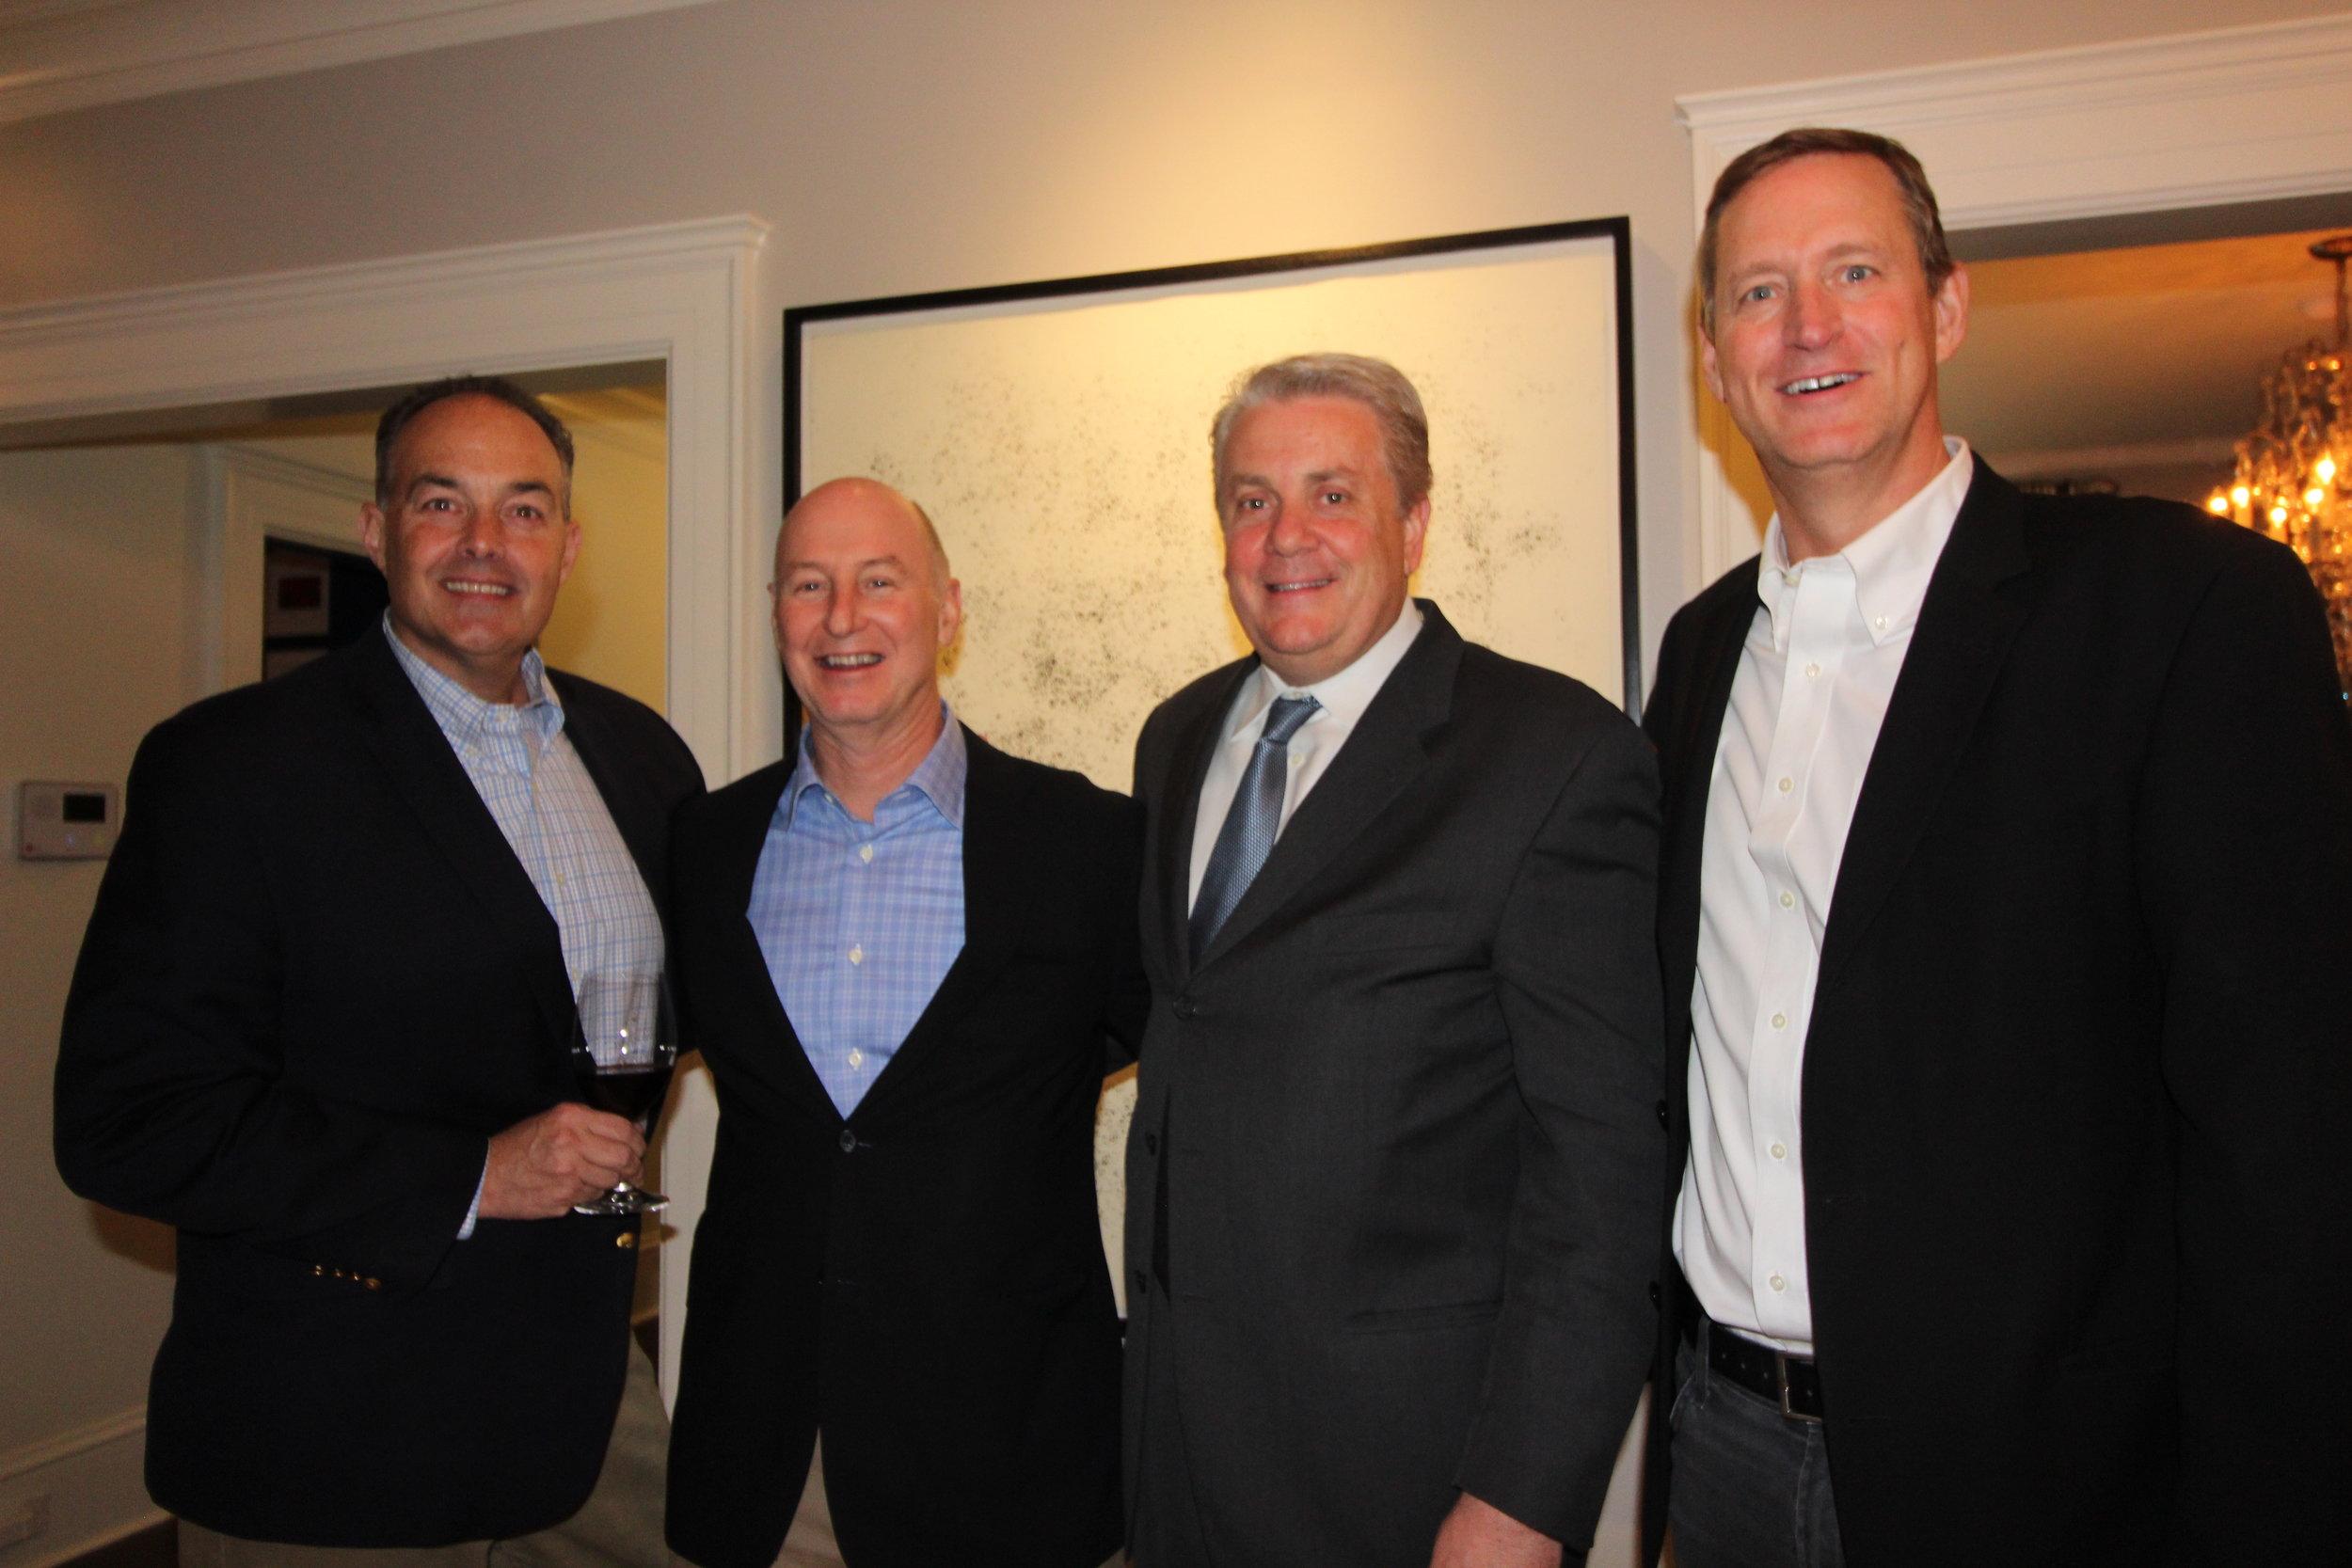 Left to right: Jim Ruff, CWFW Board Member Jeff Conway, Jim Cantalupo and Kirk Henry.